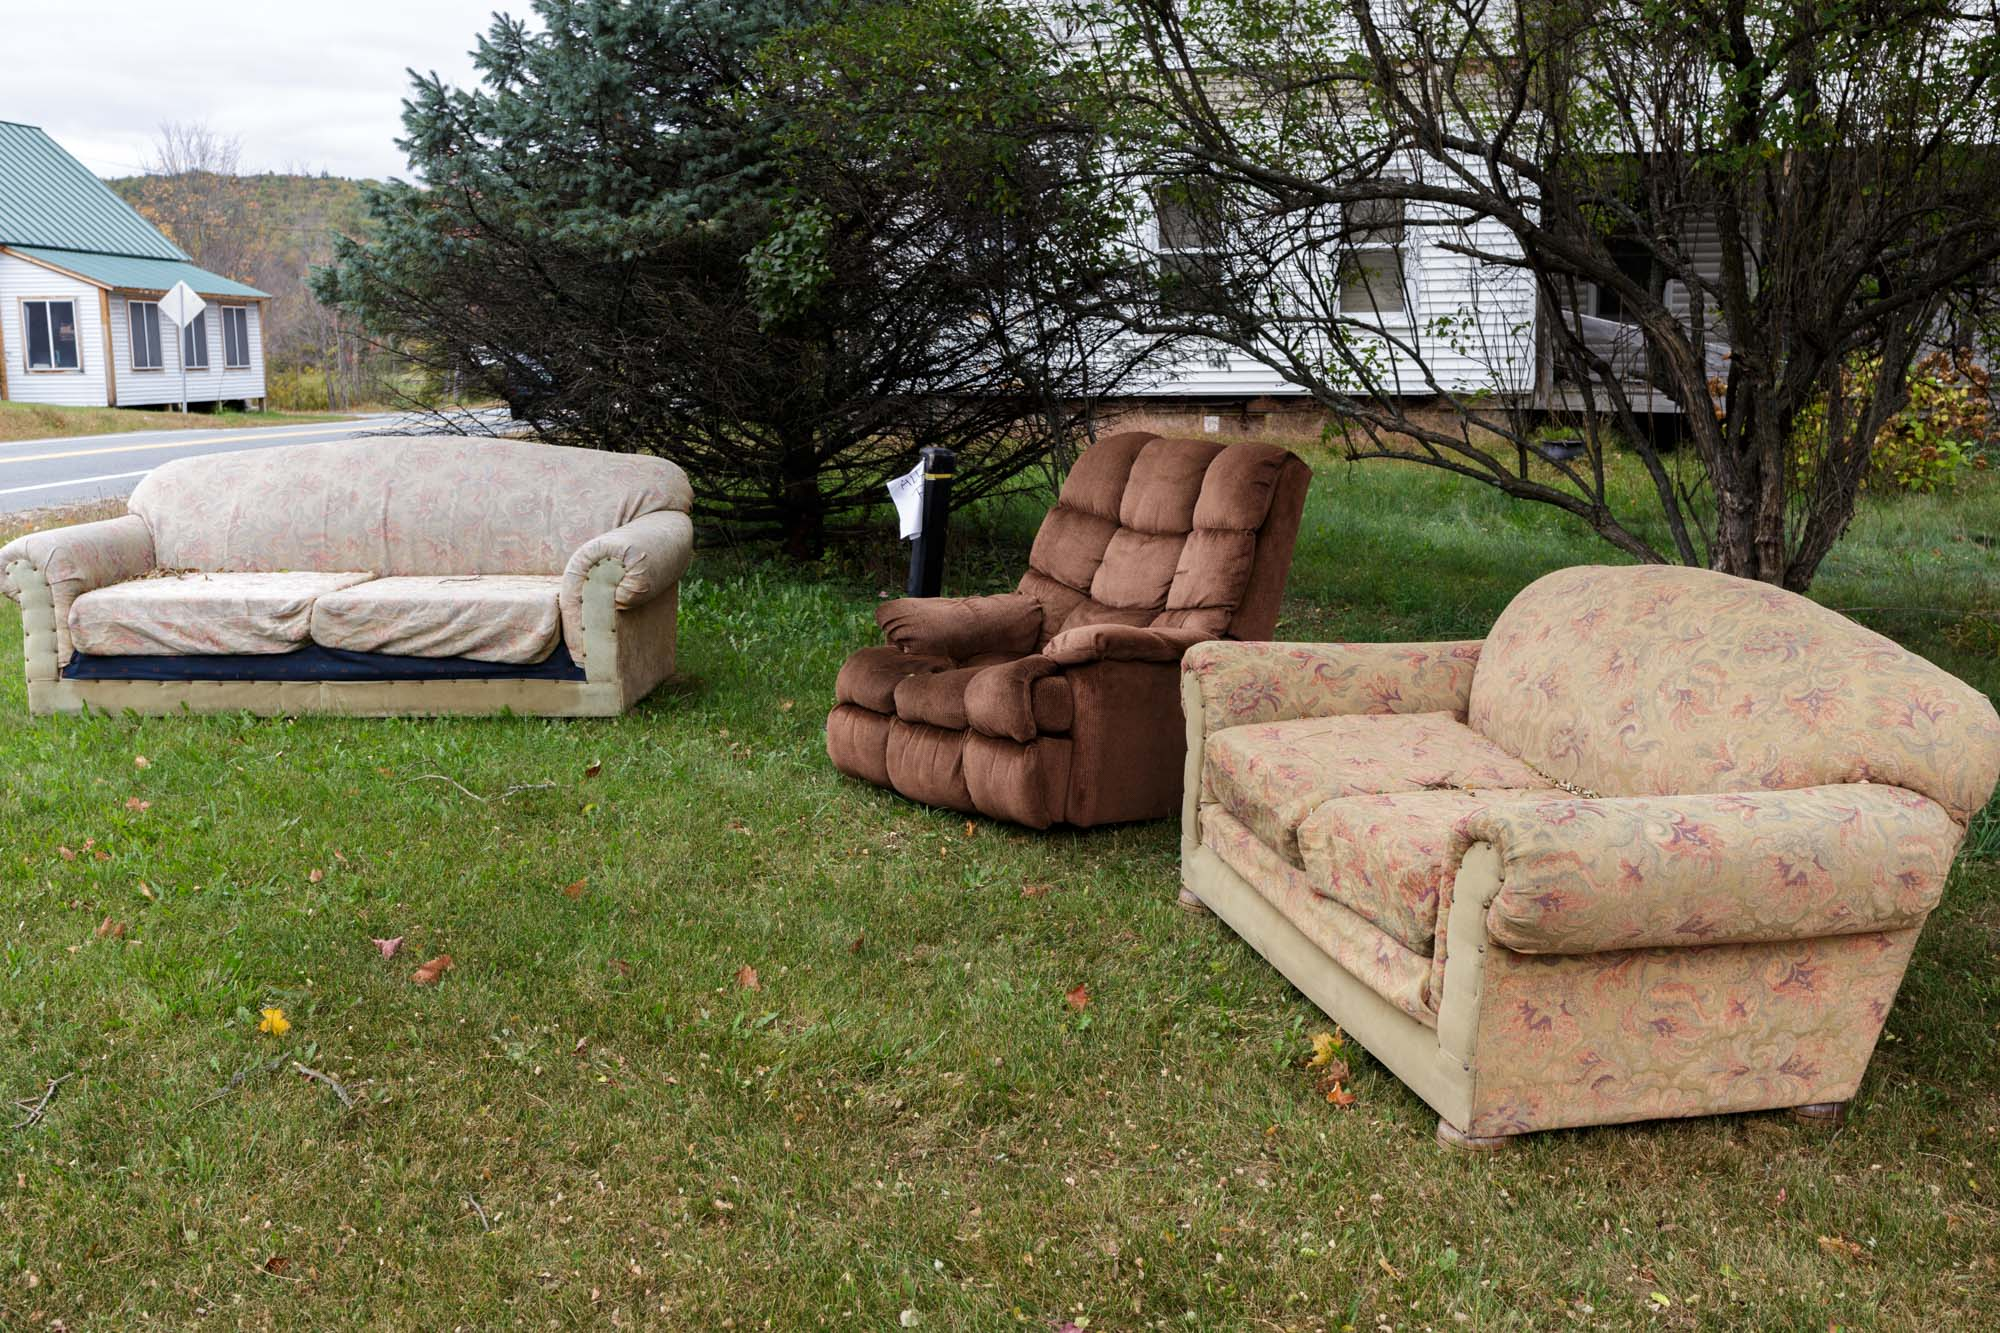 Furniture on Lawn